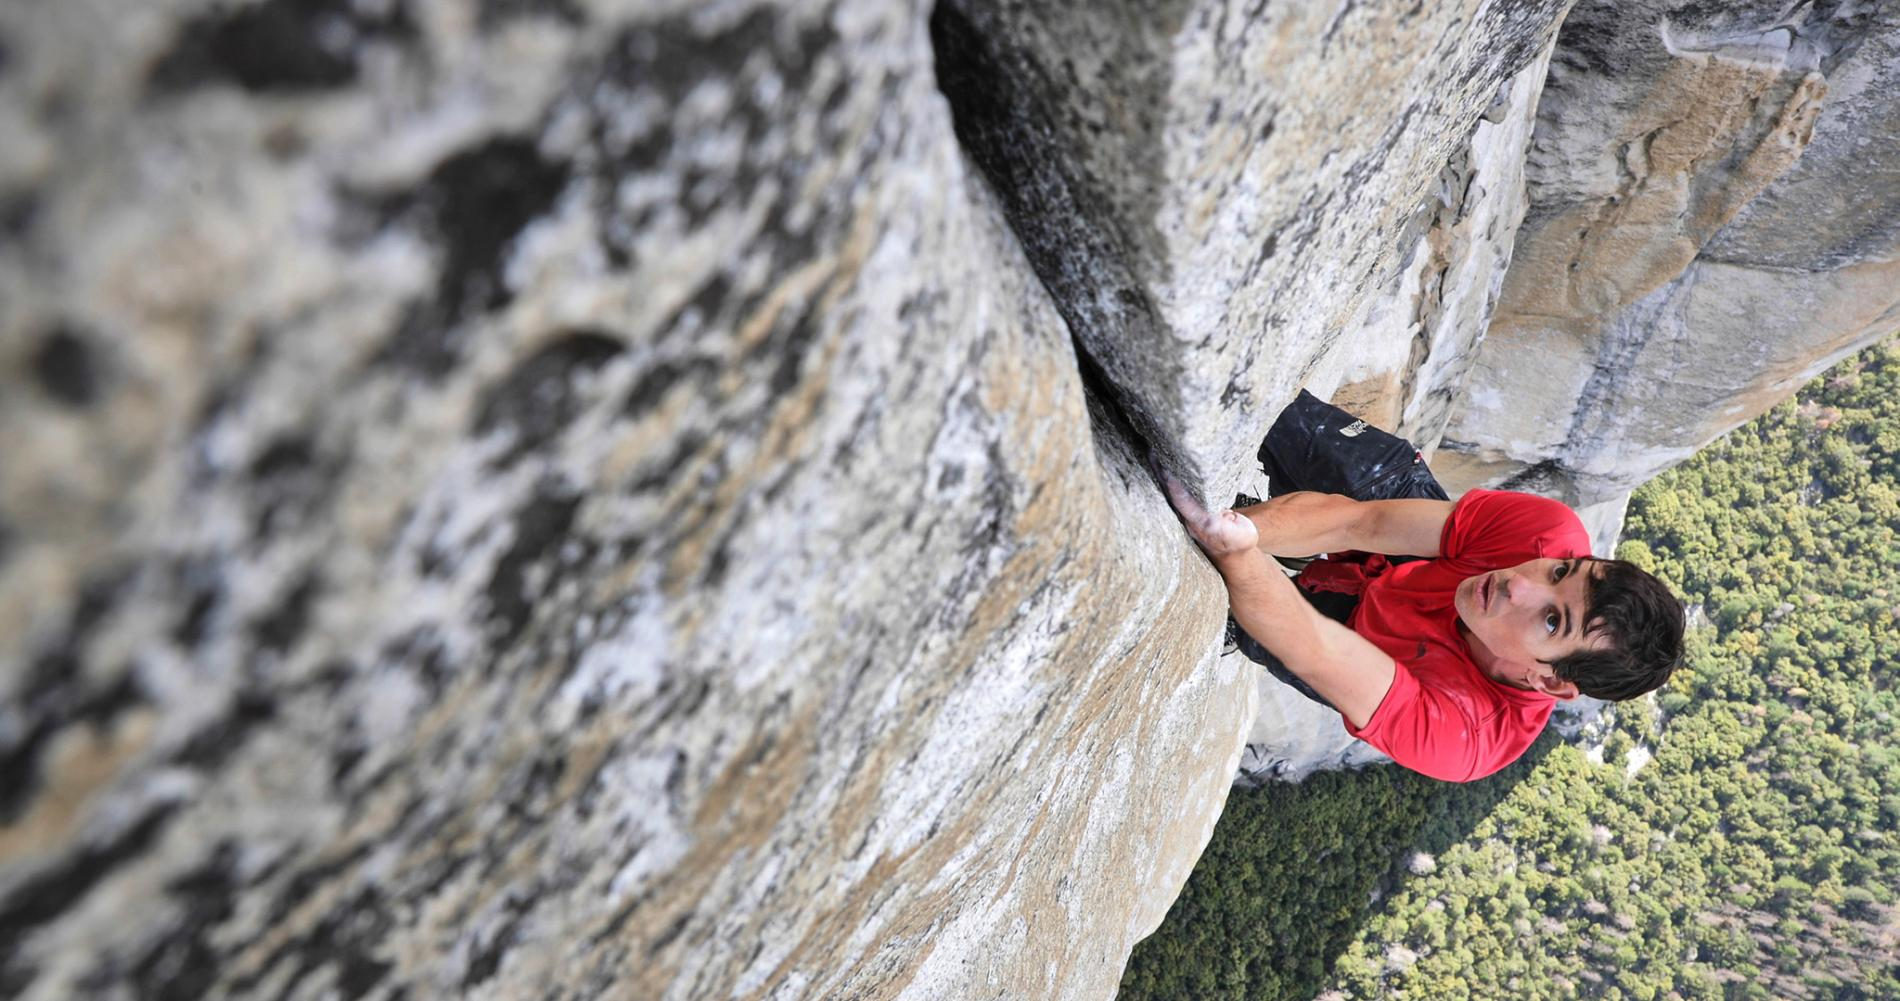 Alex Honnold recognized as one of the world's best climbers, was the first to free solo climb (i.e.without ropes), Yosemite's El Capitan.